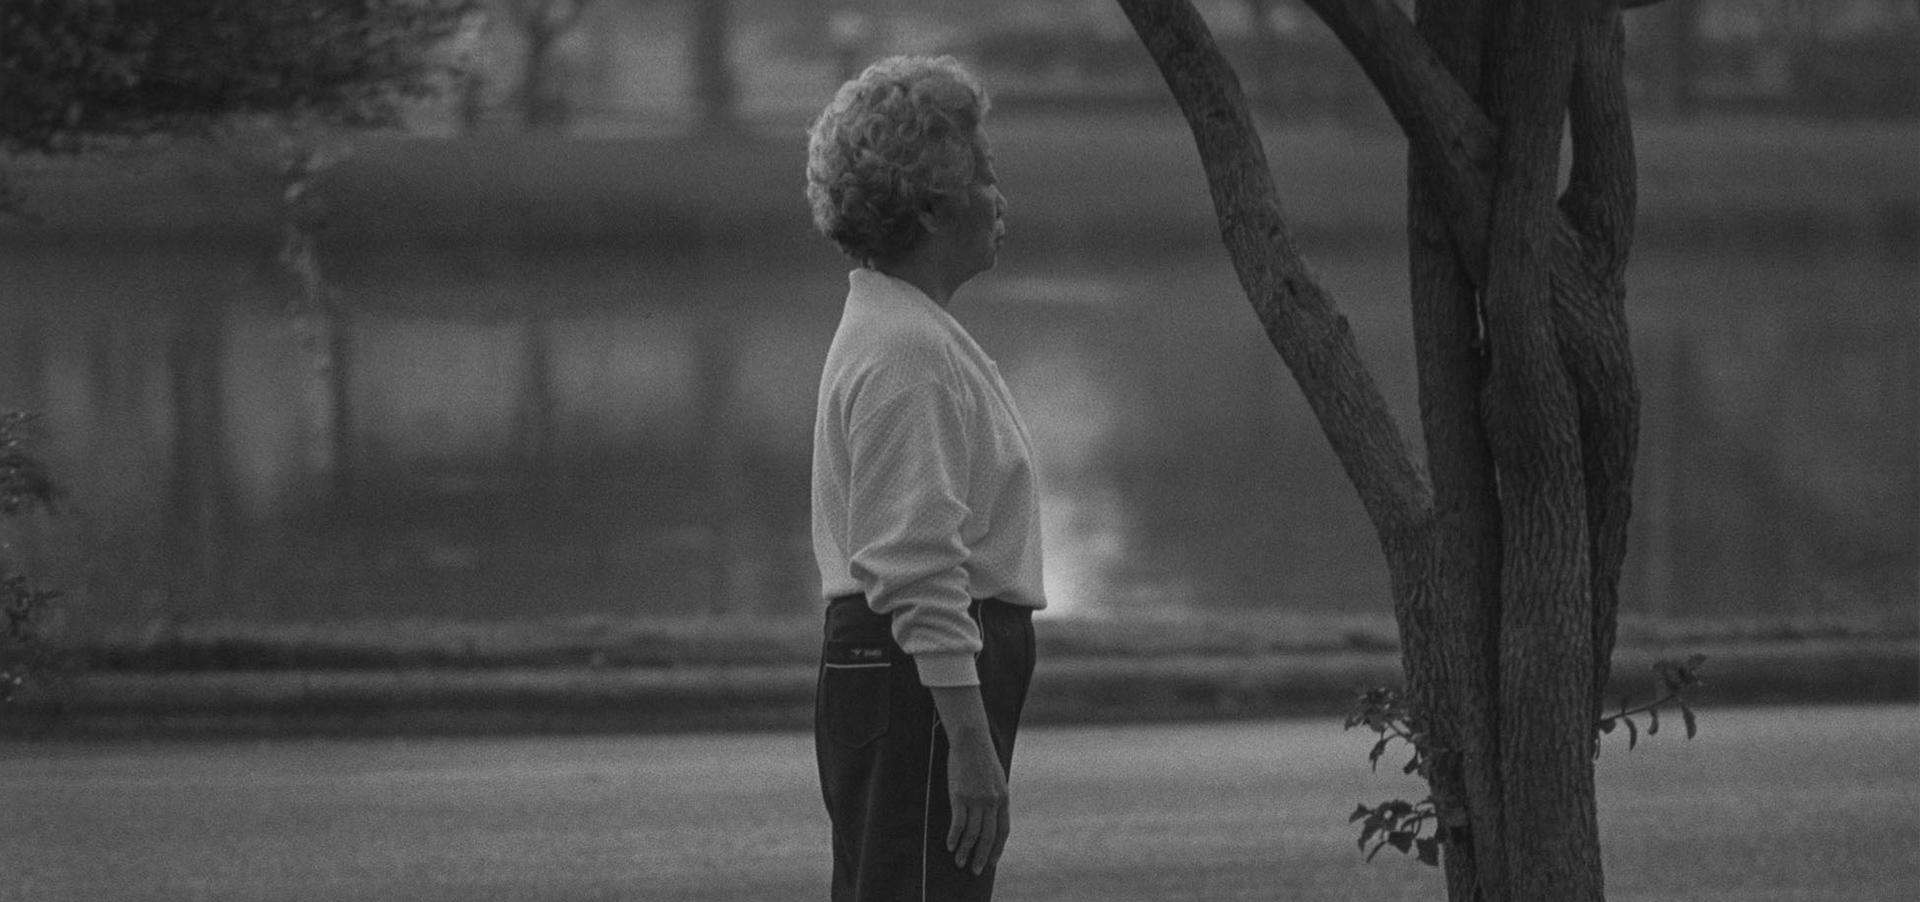 A photo by Roy DeCarava, titled Woman standing, tree, dated 1987.